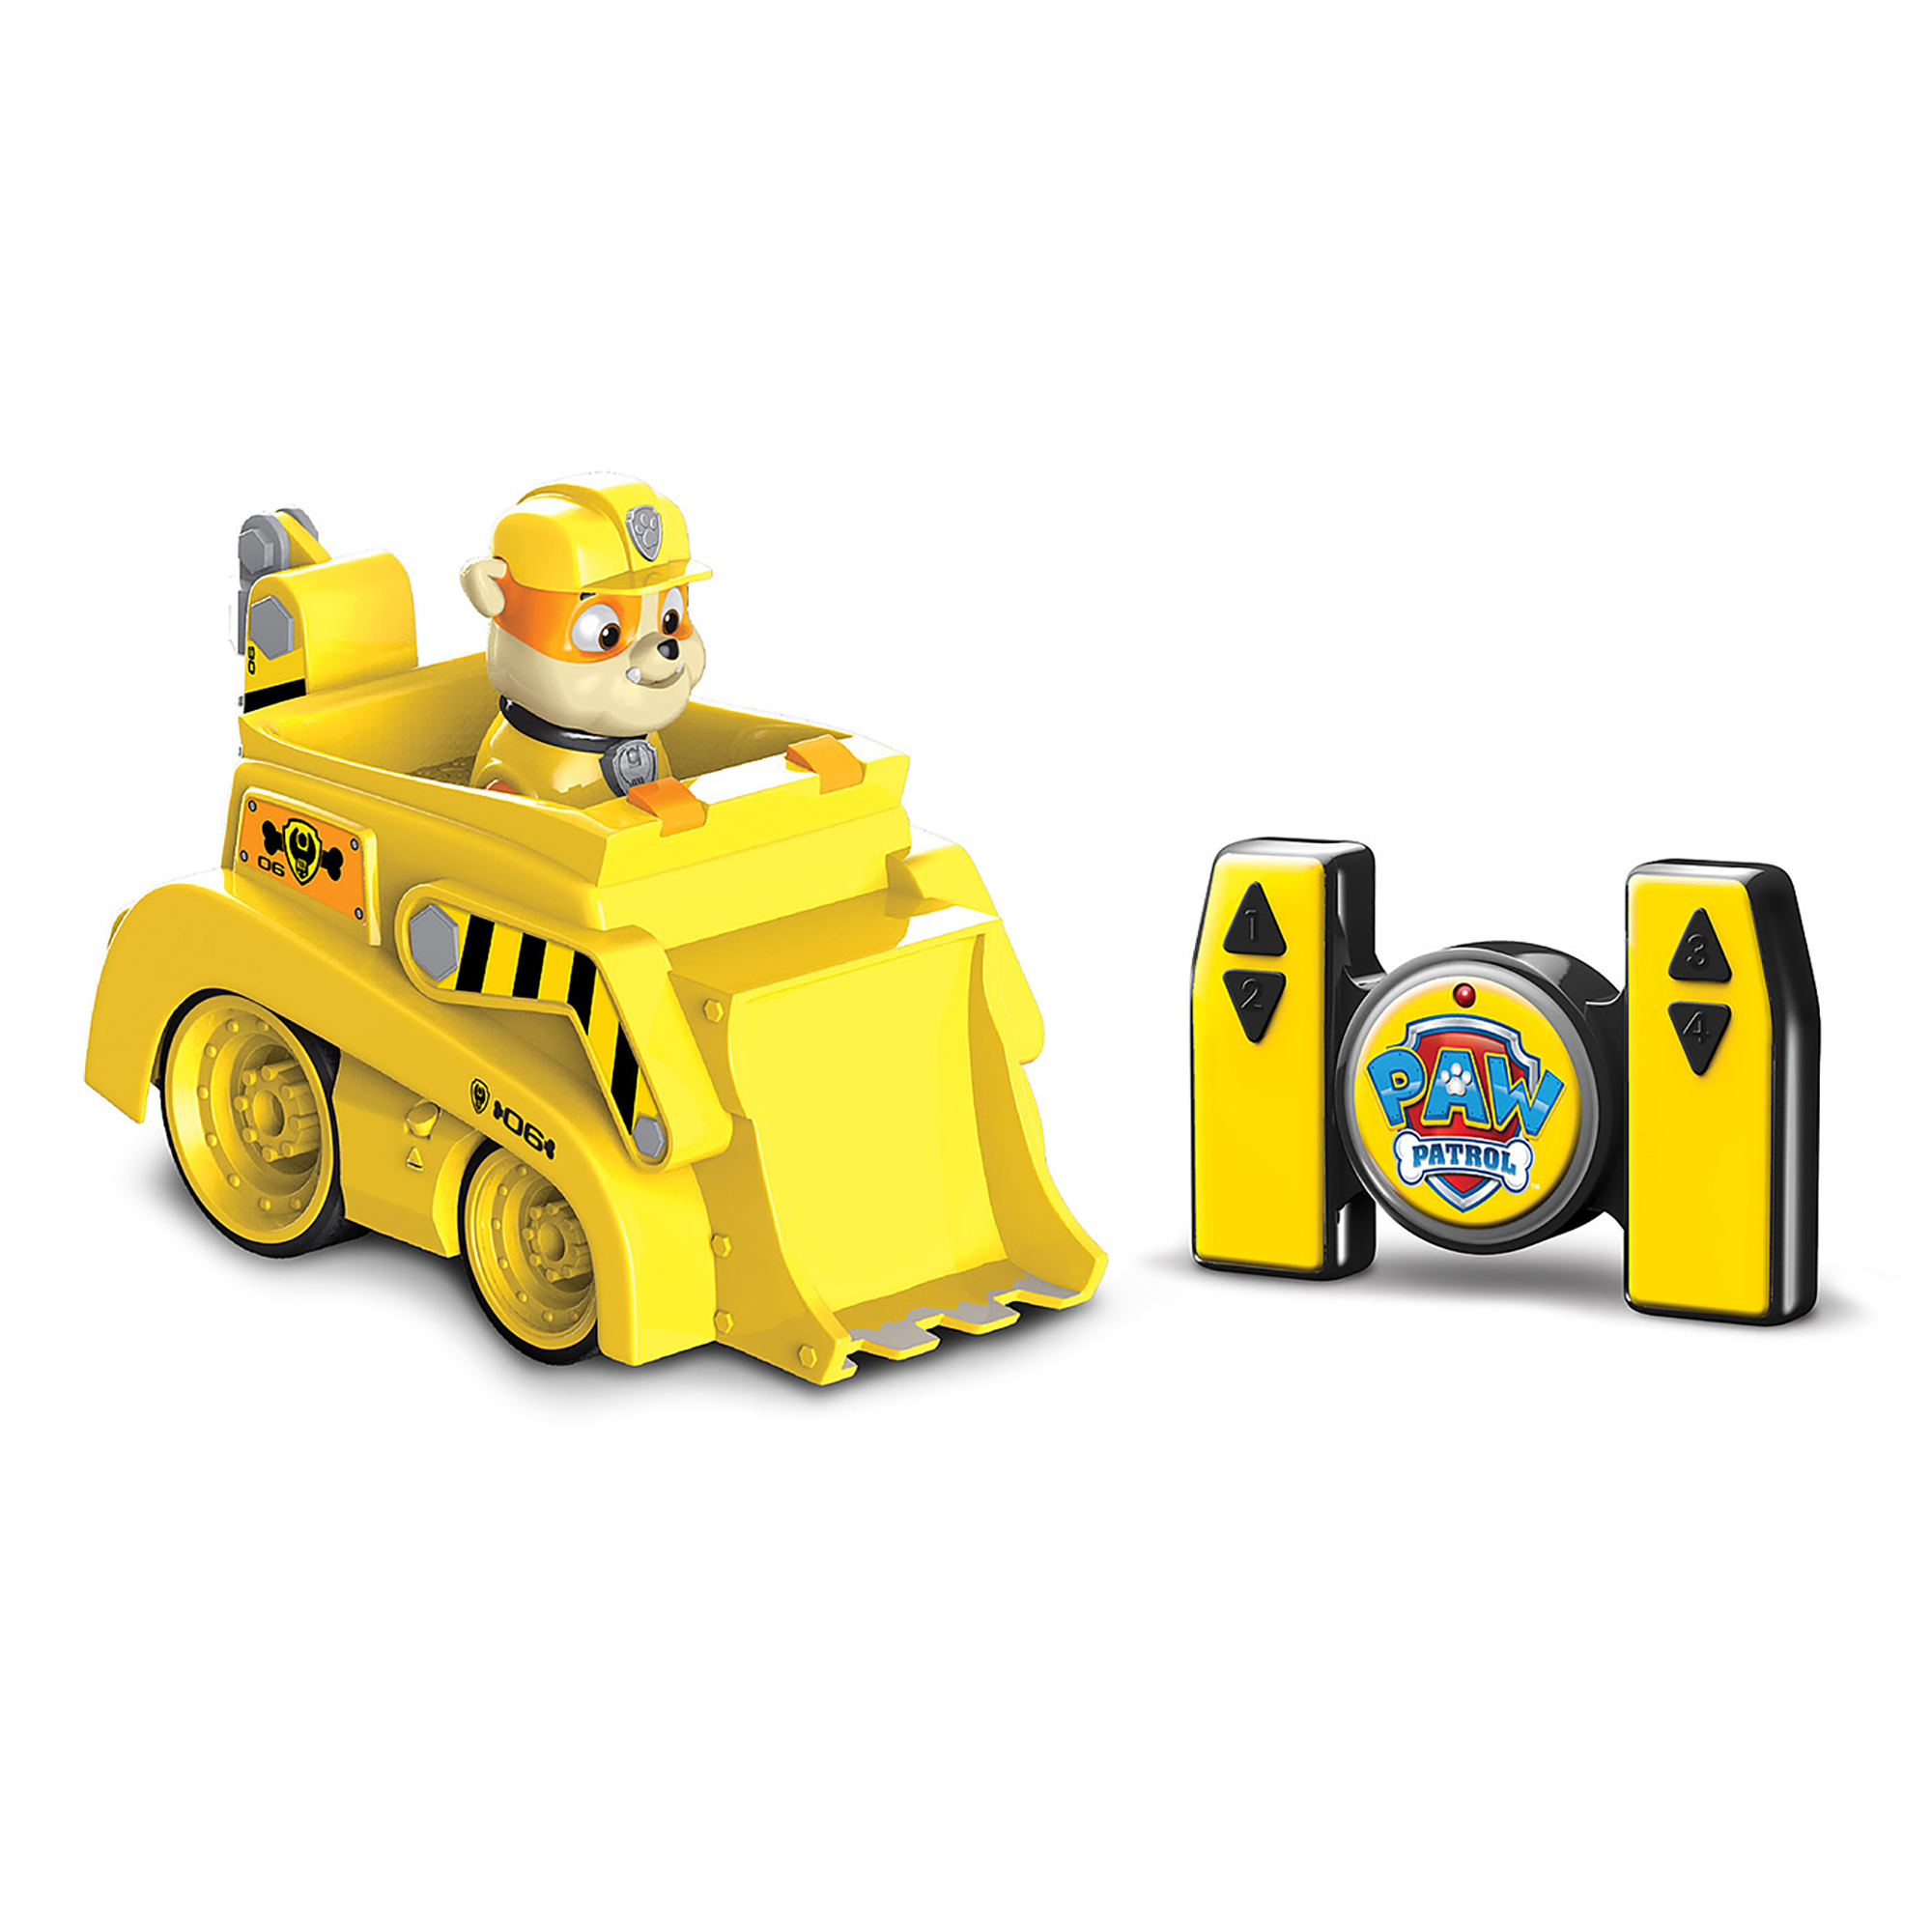 Jamn Products Paw Patrol My First Preschool Remote Control, Rubble by Jam'n Products